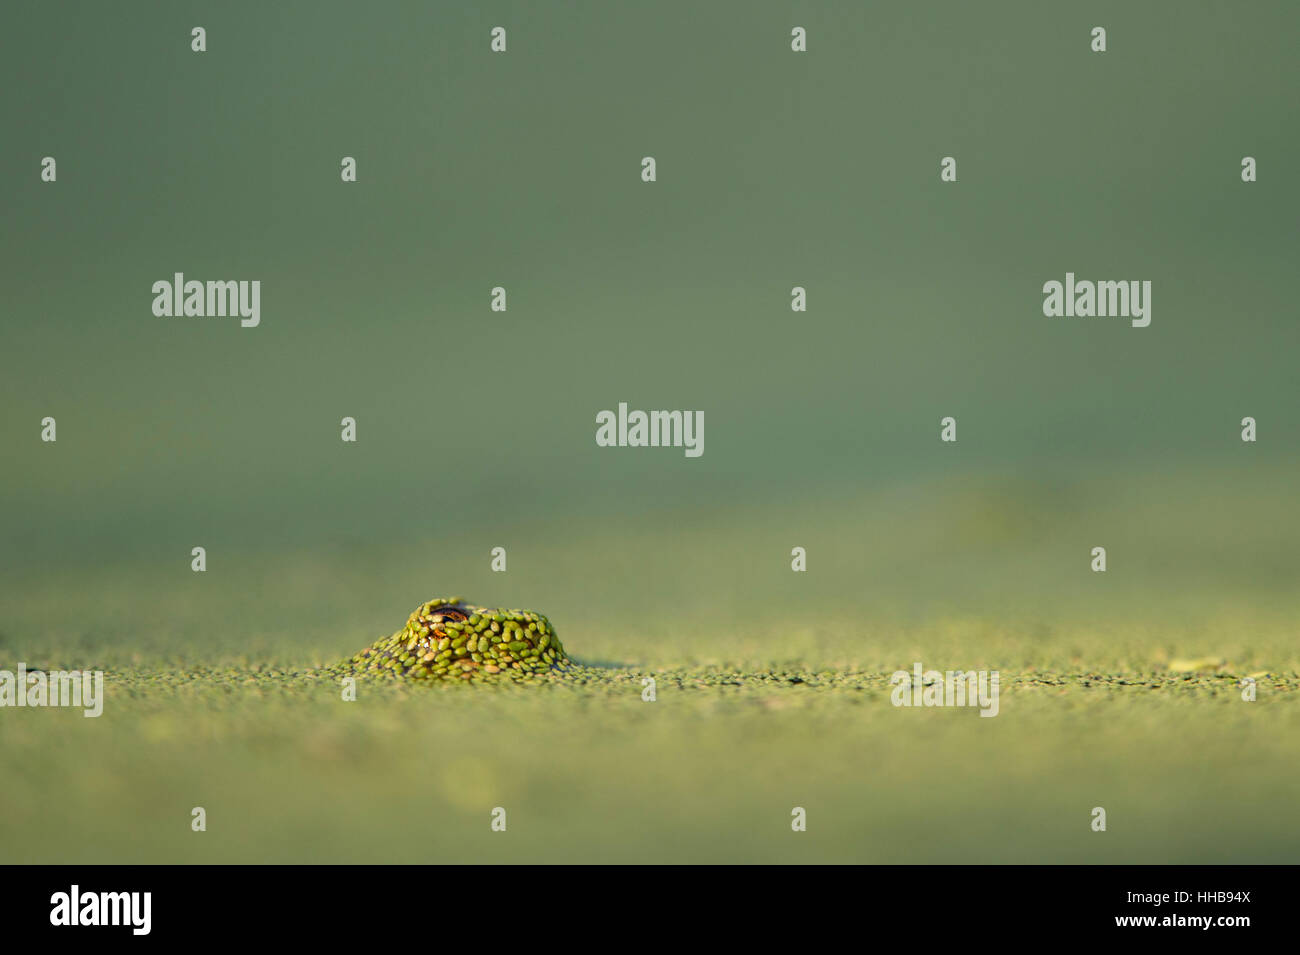 A tiny frog surfaced through a pond covered in duckweed to take a peek at its surroundings. - Stock Image